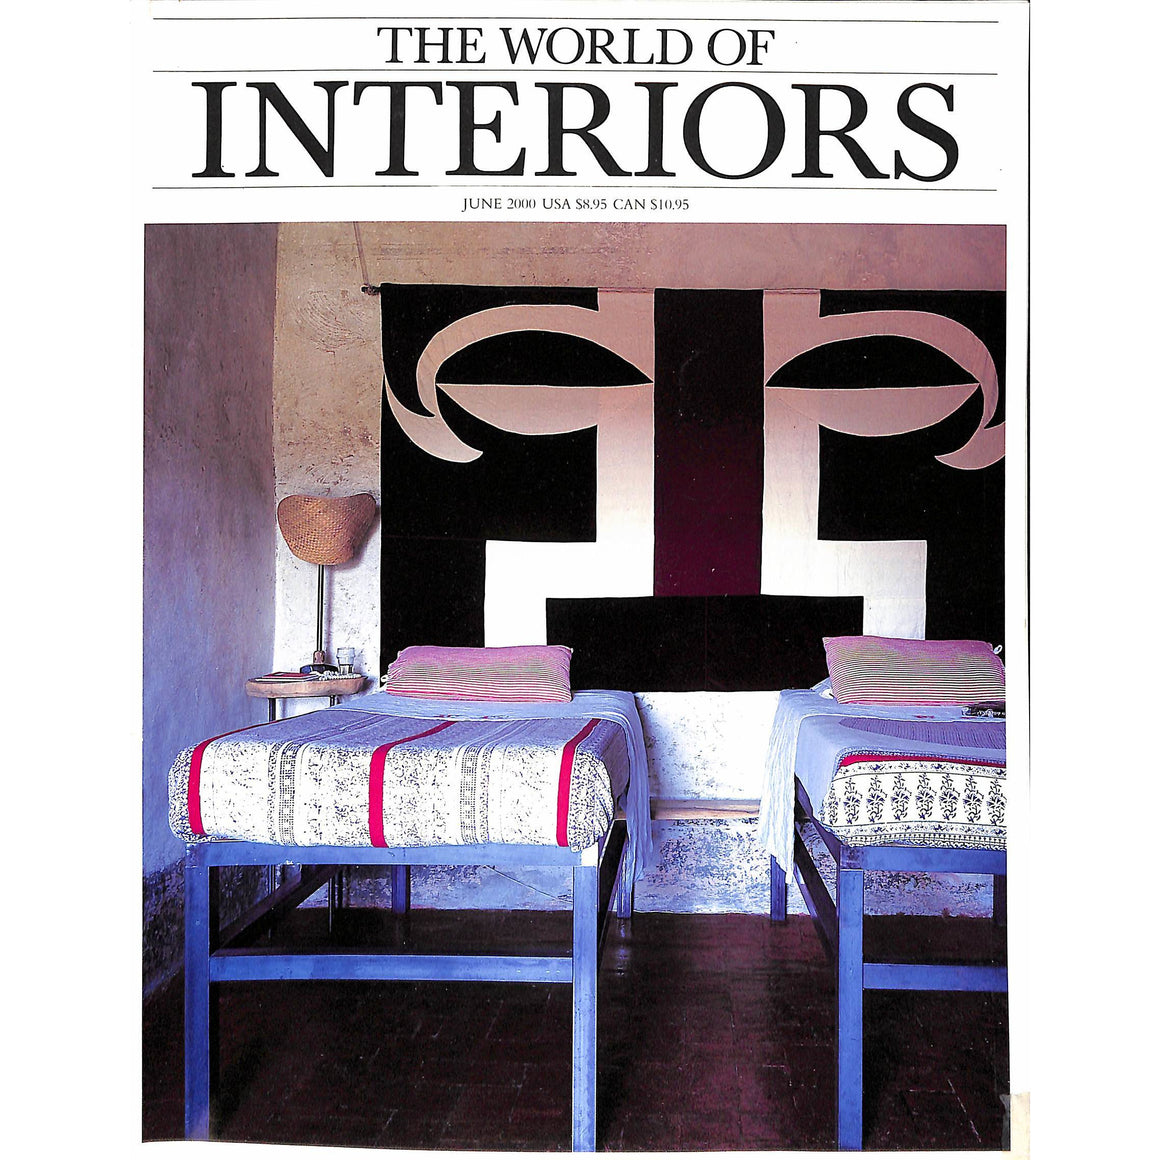 The World of Interiors June 2000